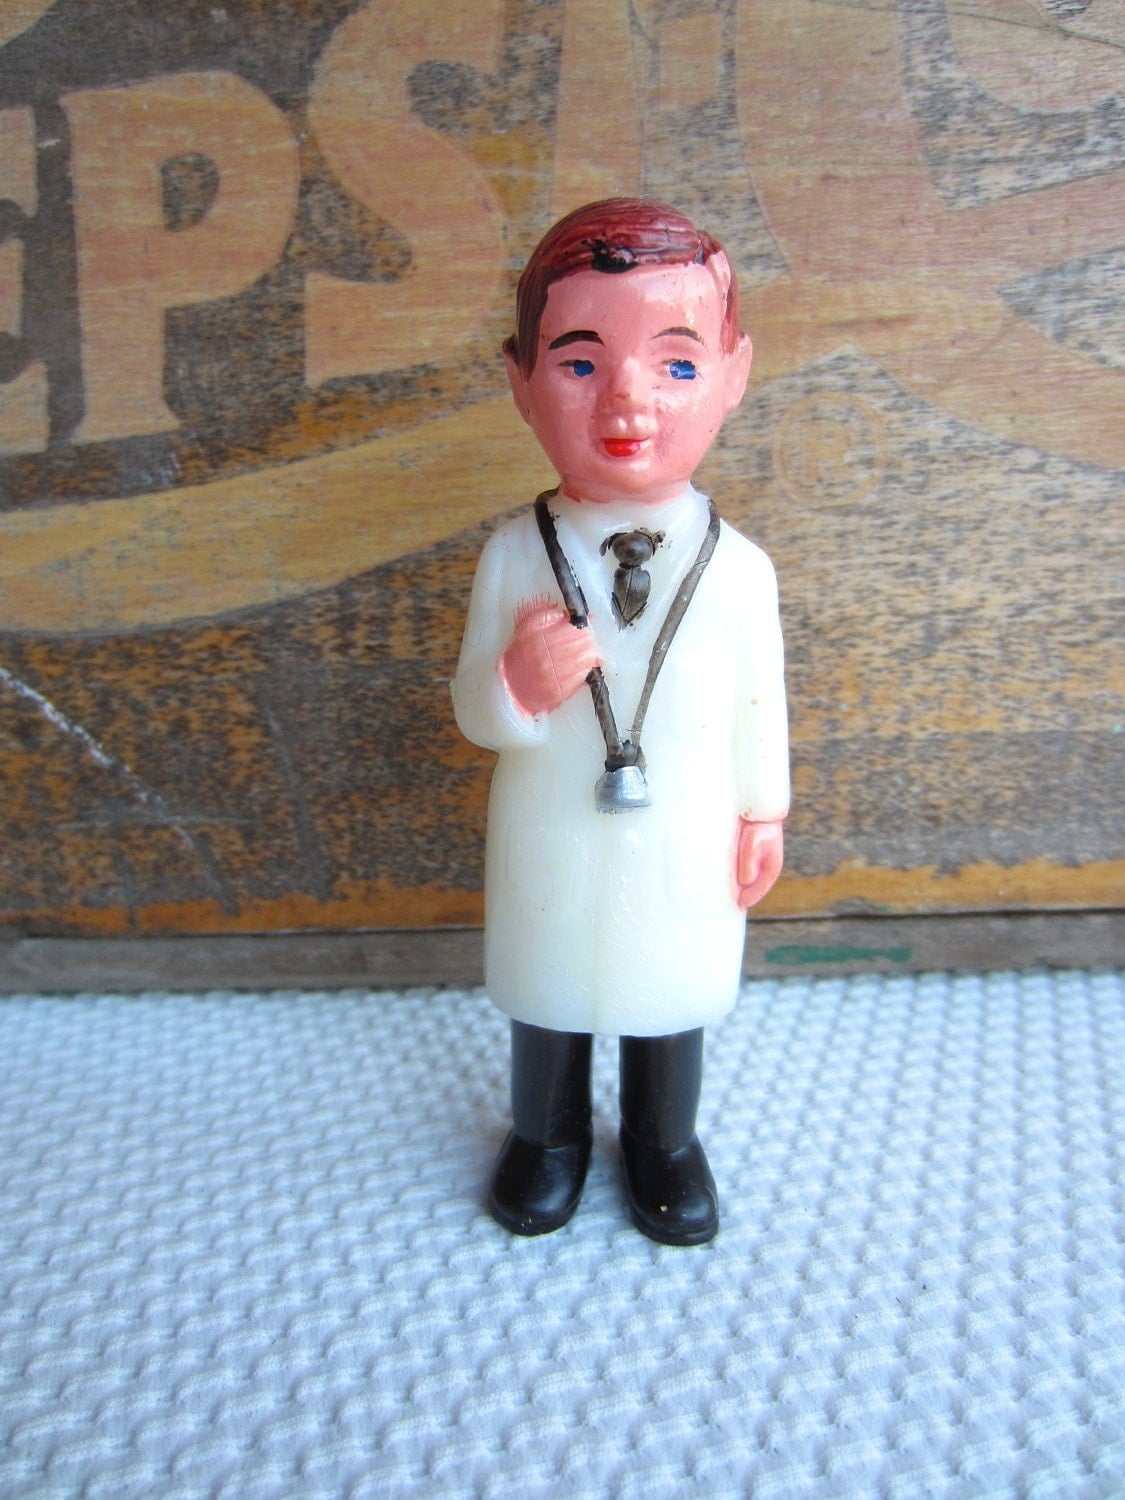 Vintage Doctor Physician Get Well Soon Wilton Cake Topper Decoration